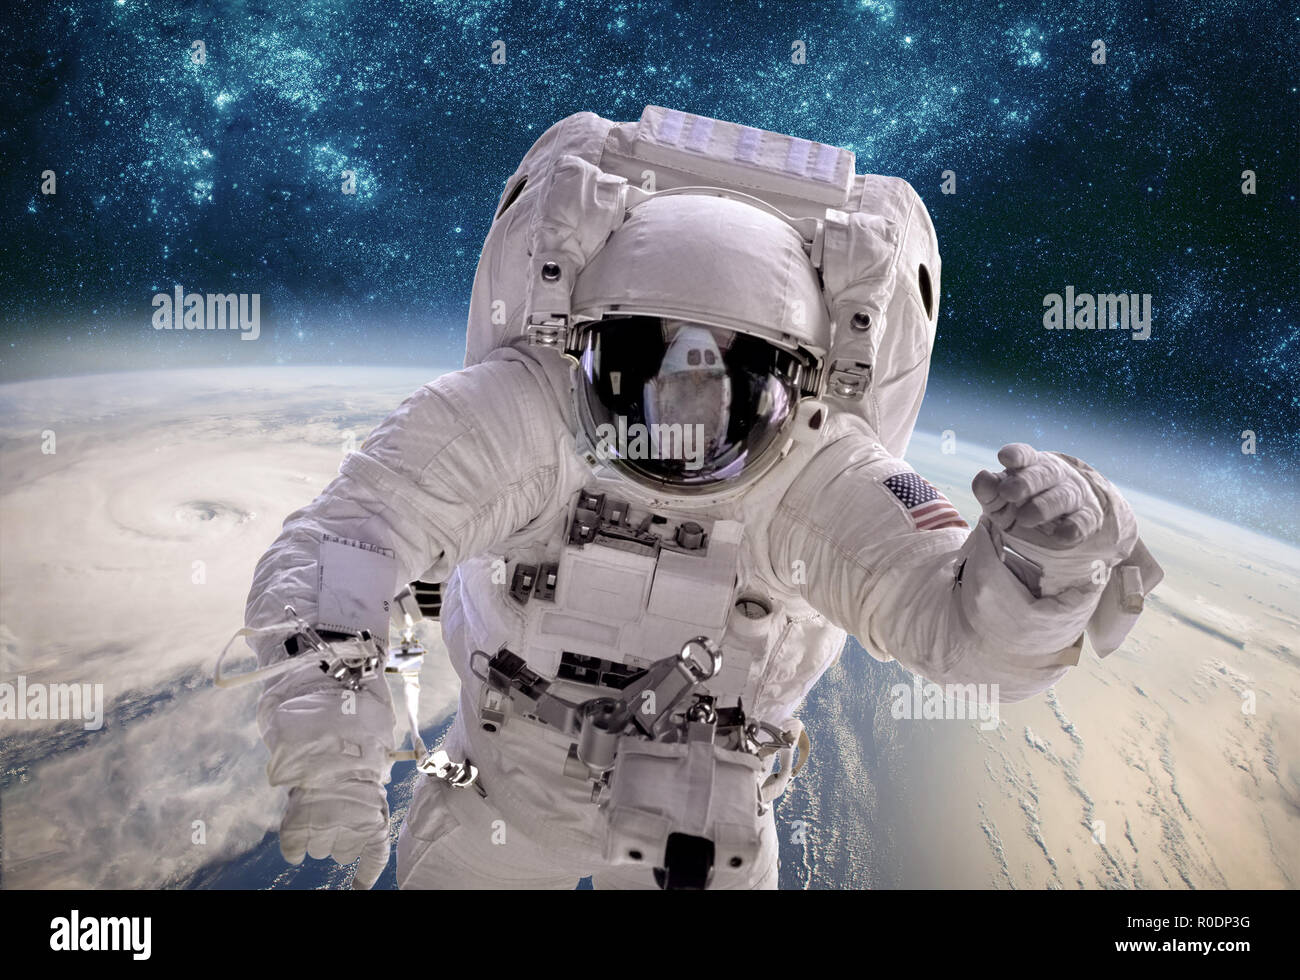 Astronaut in outer space against the backdrop of the planet earth. Typhoon over planet Earth. Elements of this image furnished by NASA. - Stock Image